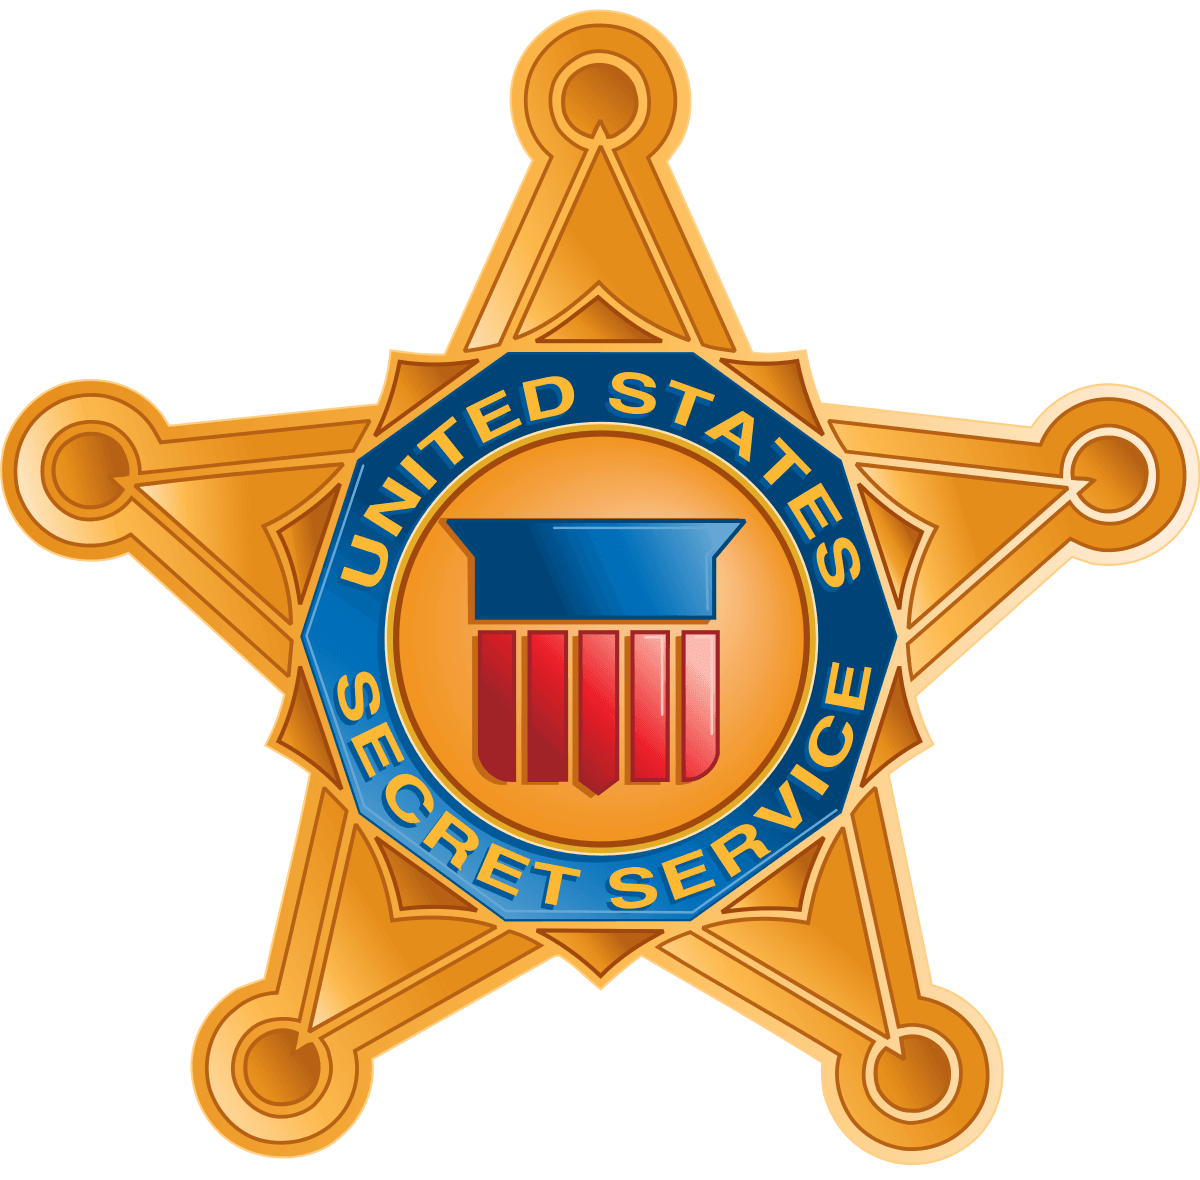 United States Secret Service Star Shaped Logo